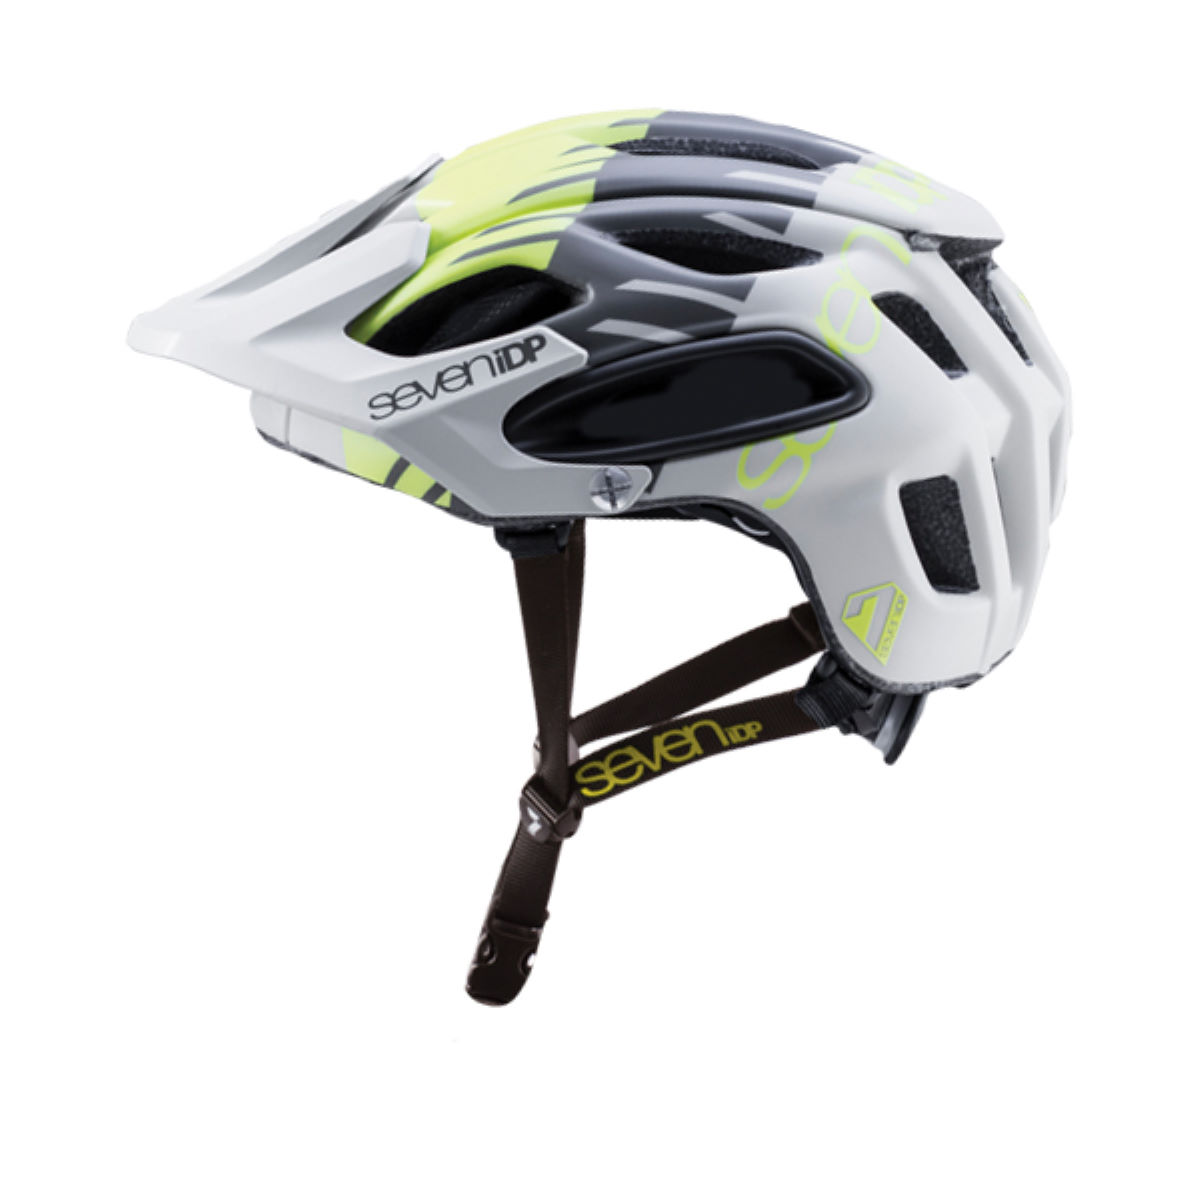 Casque 7 iDP M2 Tactic - XS/S Grey - Yellow - Blac Casques VTT